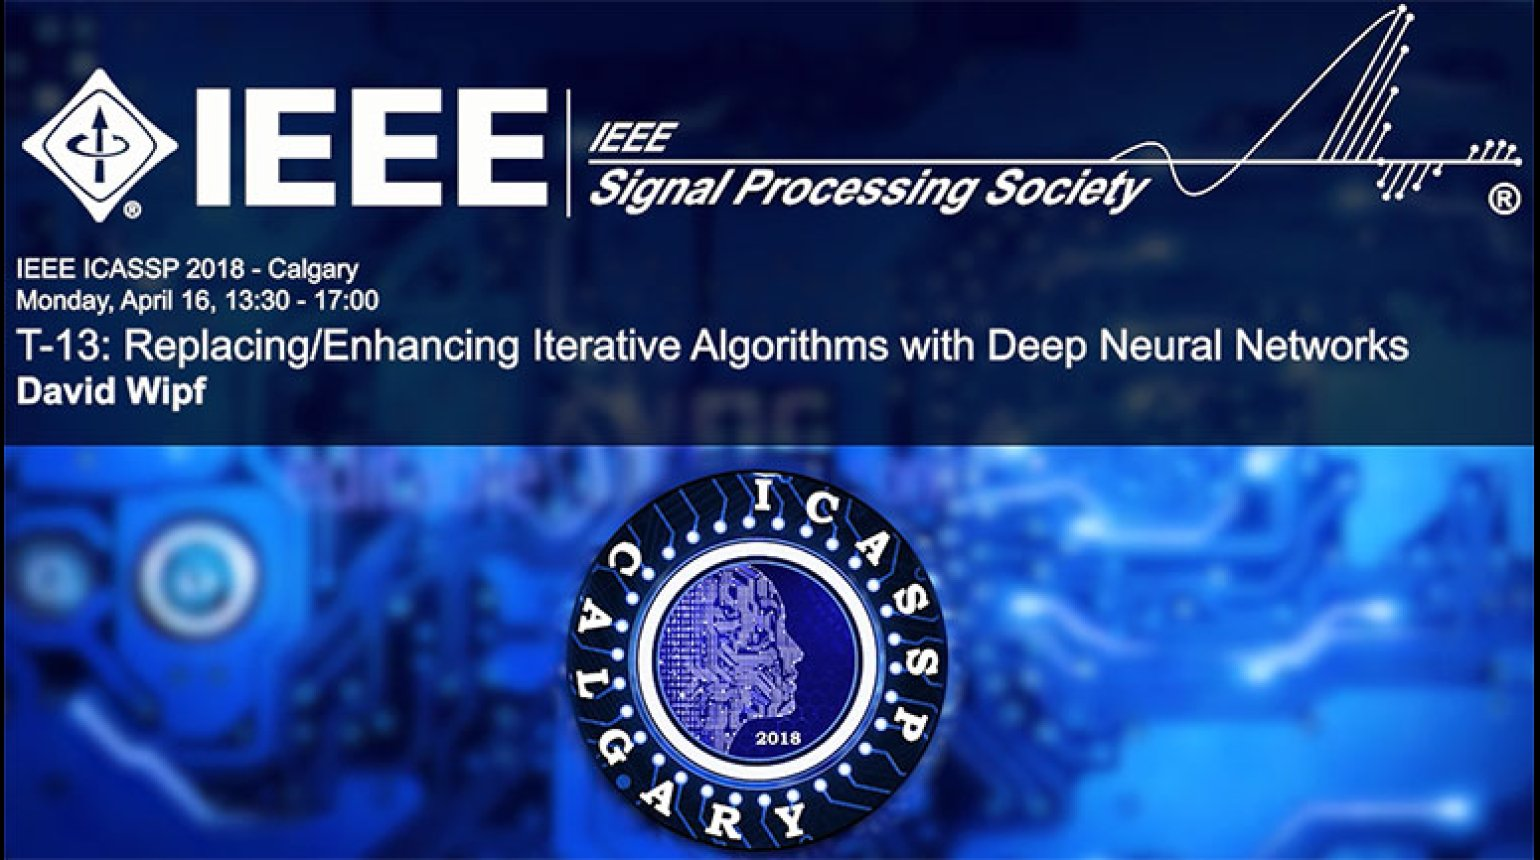 Tutorial 13 - Replacing, Enhancing Iterative Algorithms with Deep Neural Networks